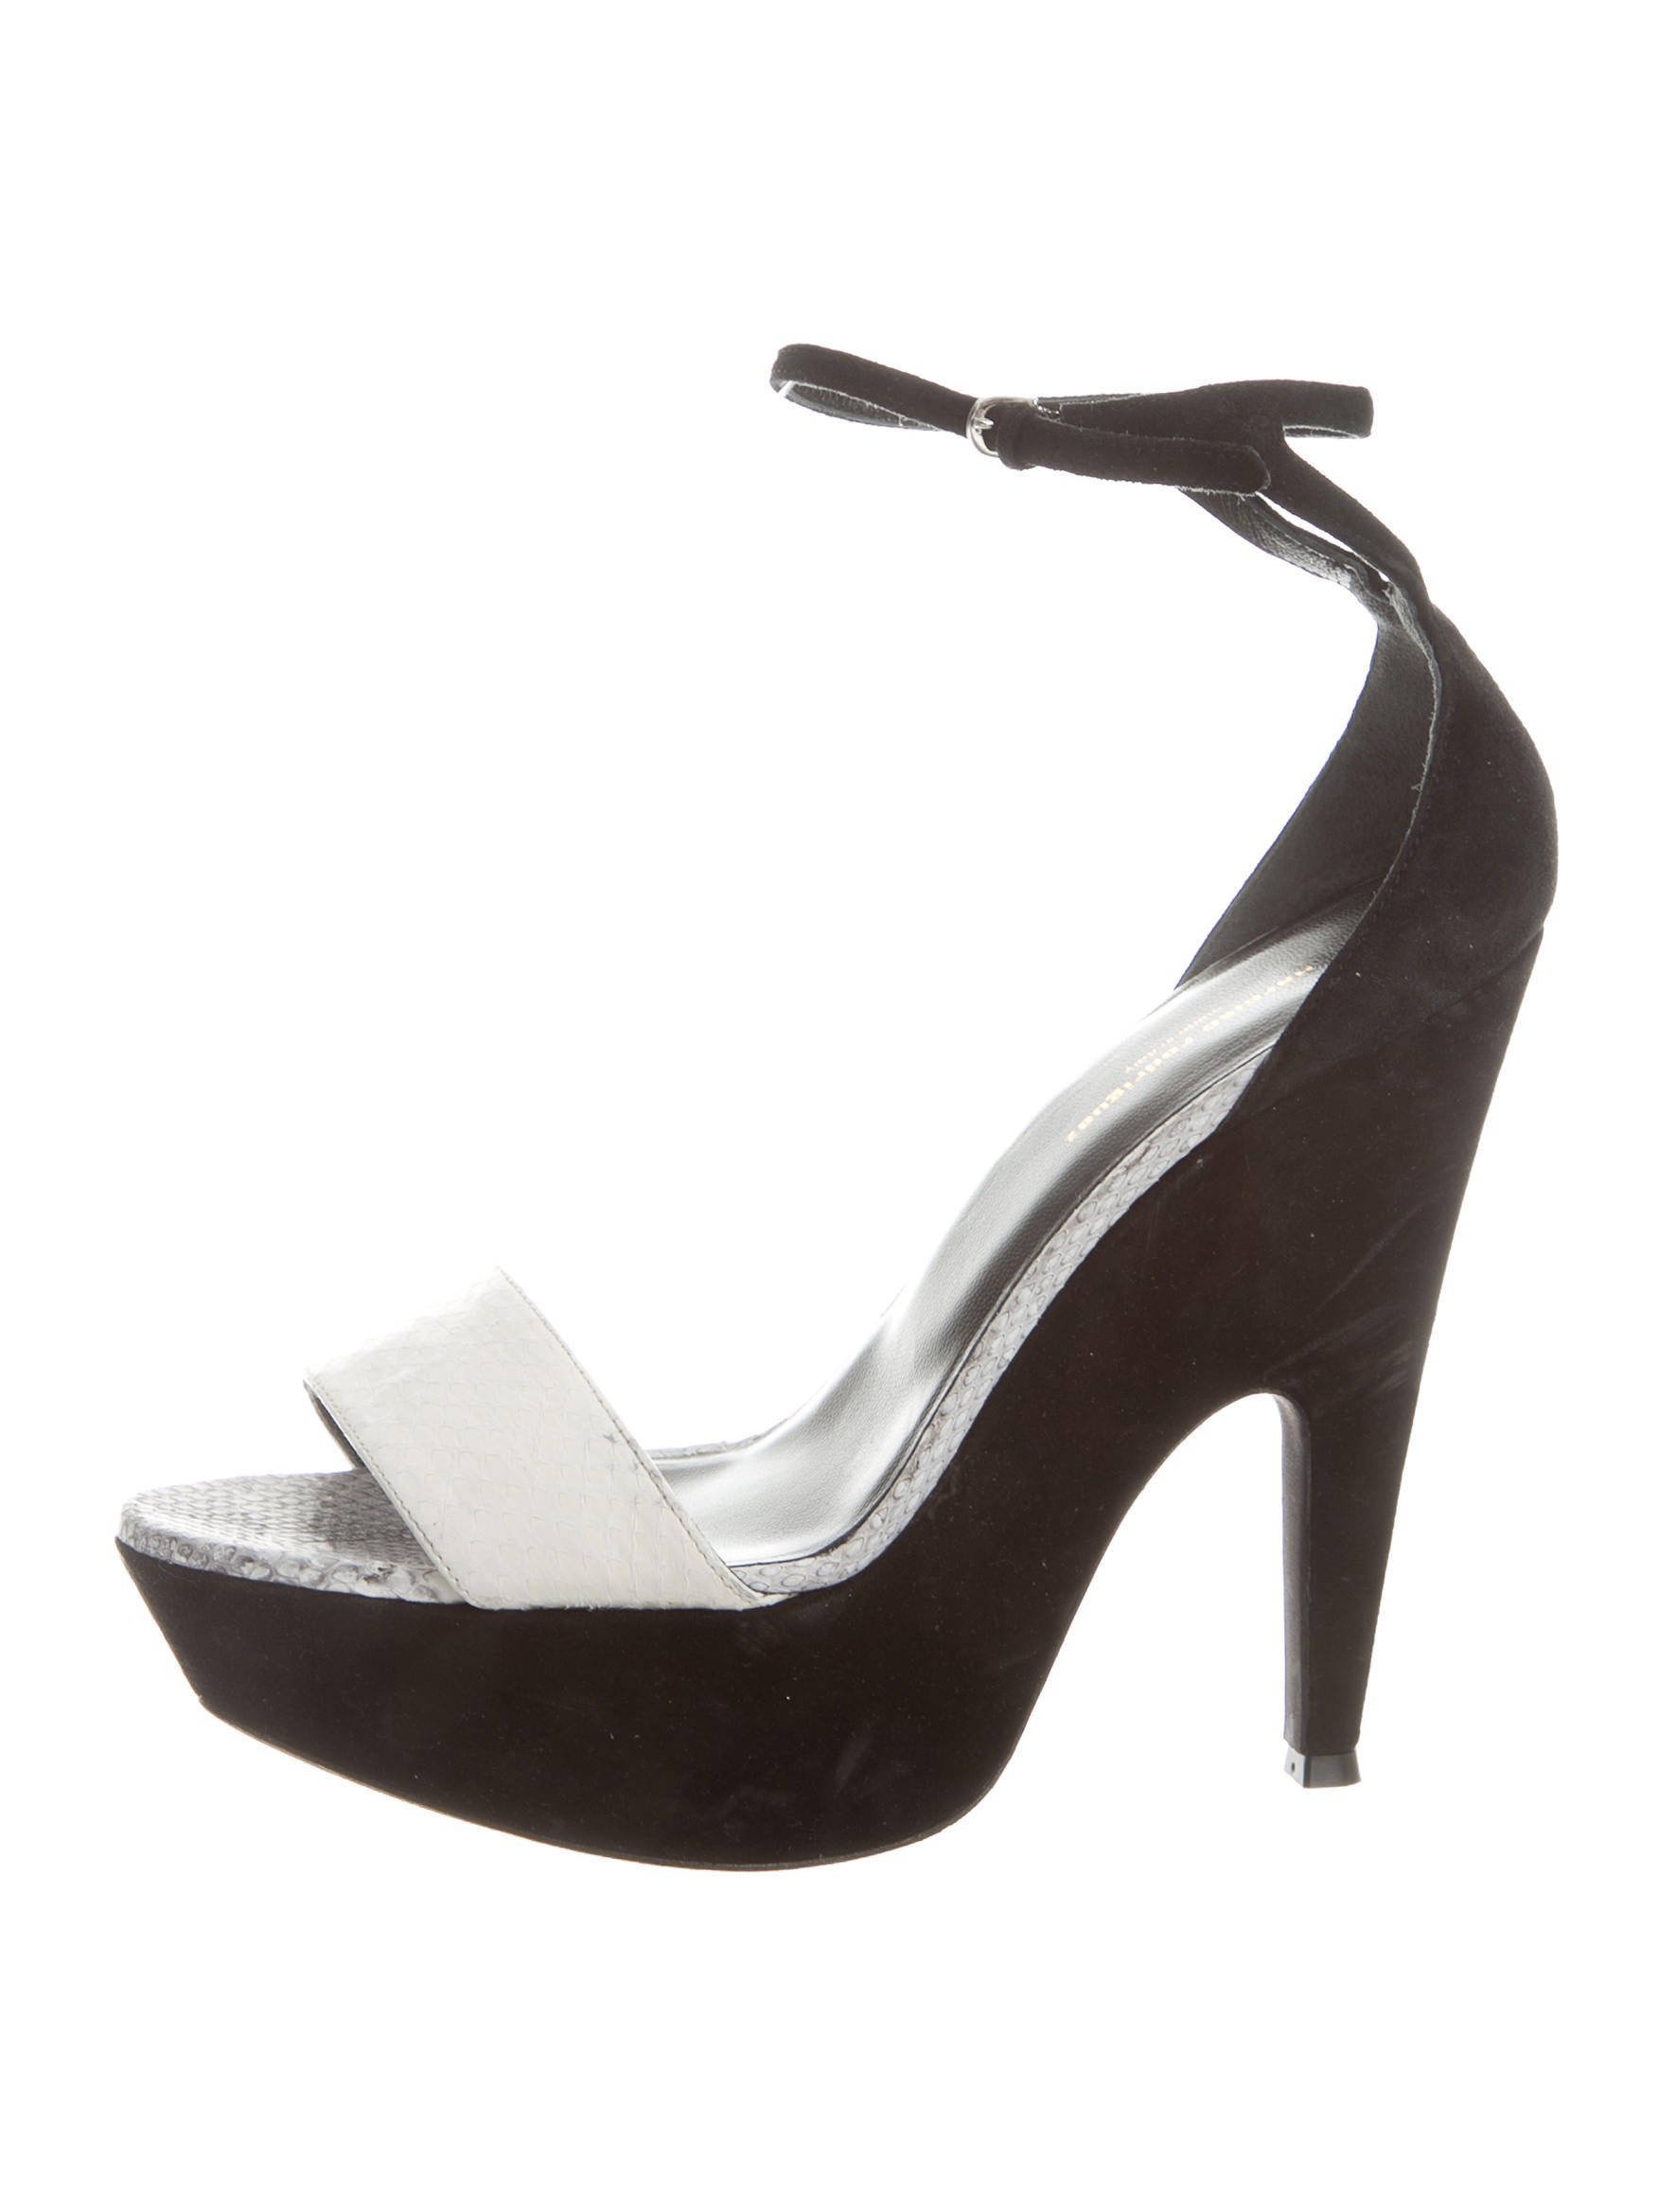 narciso rodriguez platform sandals shoes nar24548